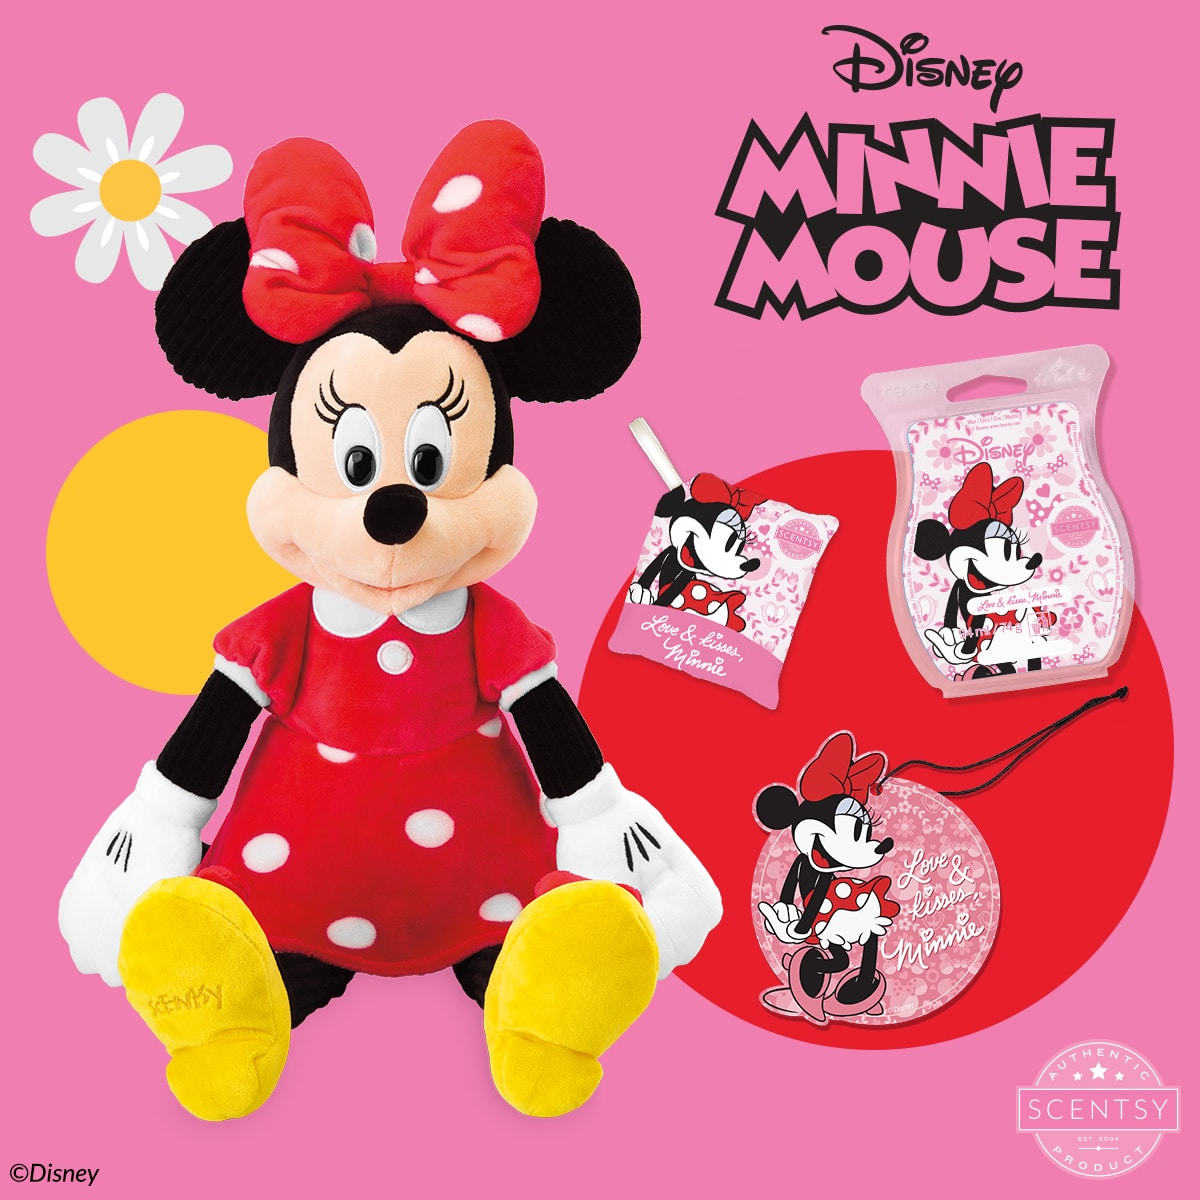 Our Minnie Mouse – Scentsy Buddy arrives 1 September as part of The Disney Collection, complete with her very own Scentsy fragrance, Love & Kisses, Minnie!